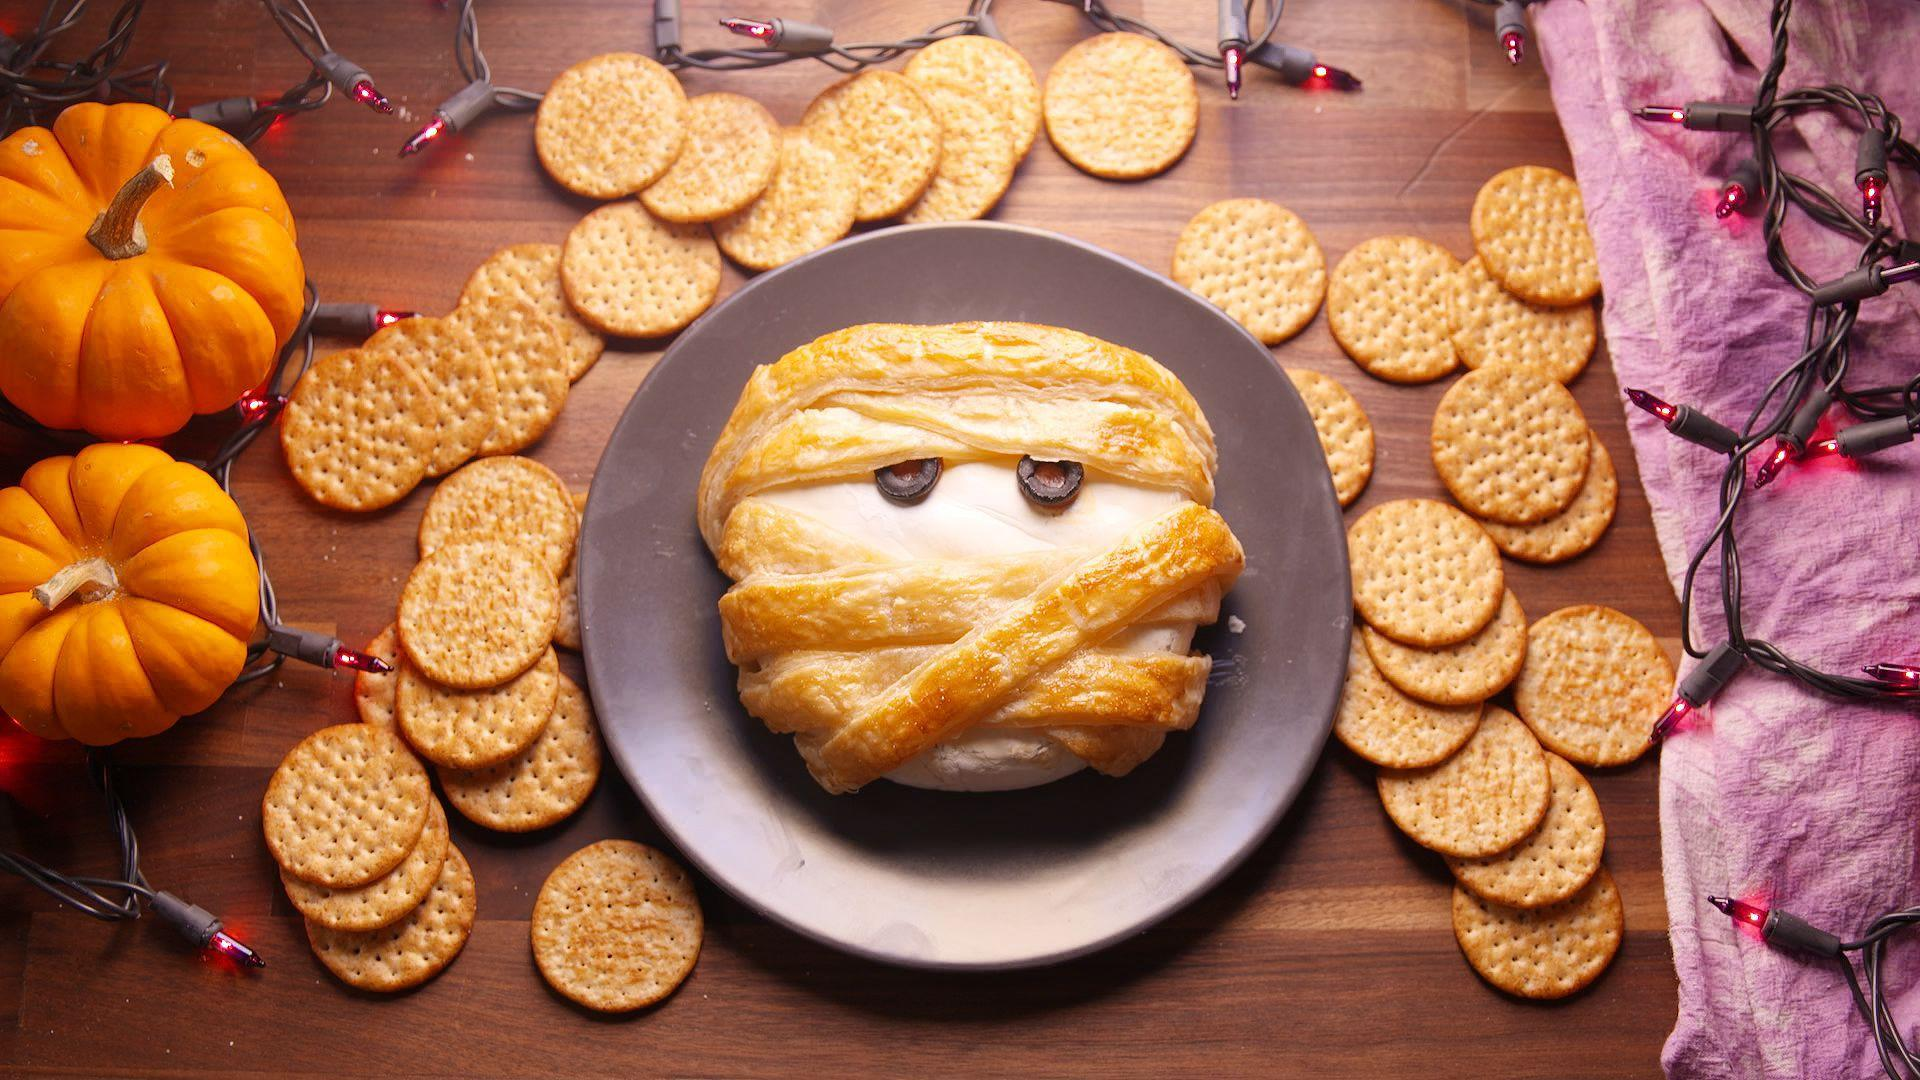 20 Halloween Food Ideas So Good, They're Scary. Upcycled Organization Ideas. Ideas For A No Grass Backyard. Party Ideas At Home For Tweens. Landscaping Ideas Victoria Bc. Lunch Ideas Philadelphia. Decorating Ideas Nz. Kitchen Paint Color Ideas With Honey Oak Cabinets. Bar Offer Ideas